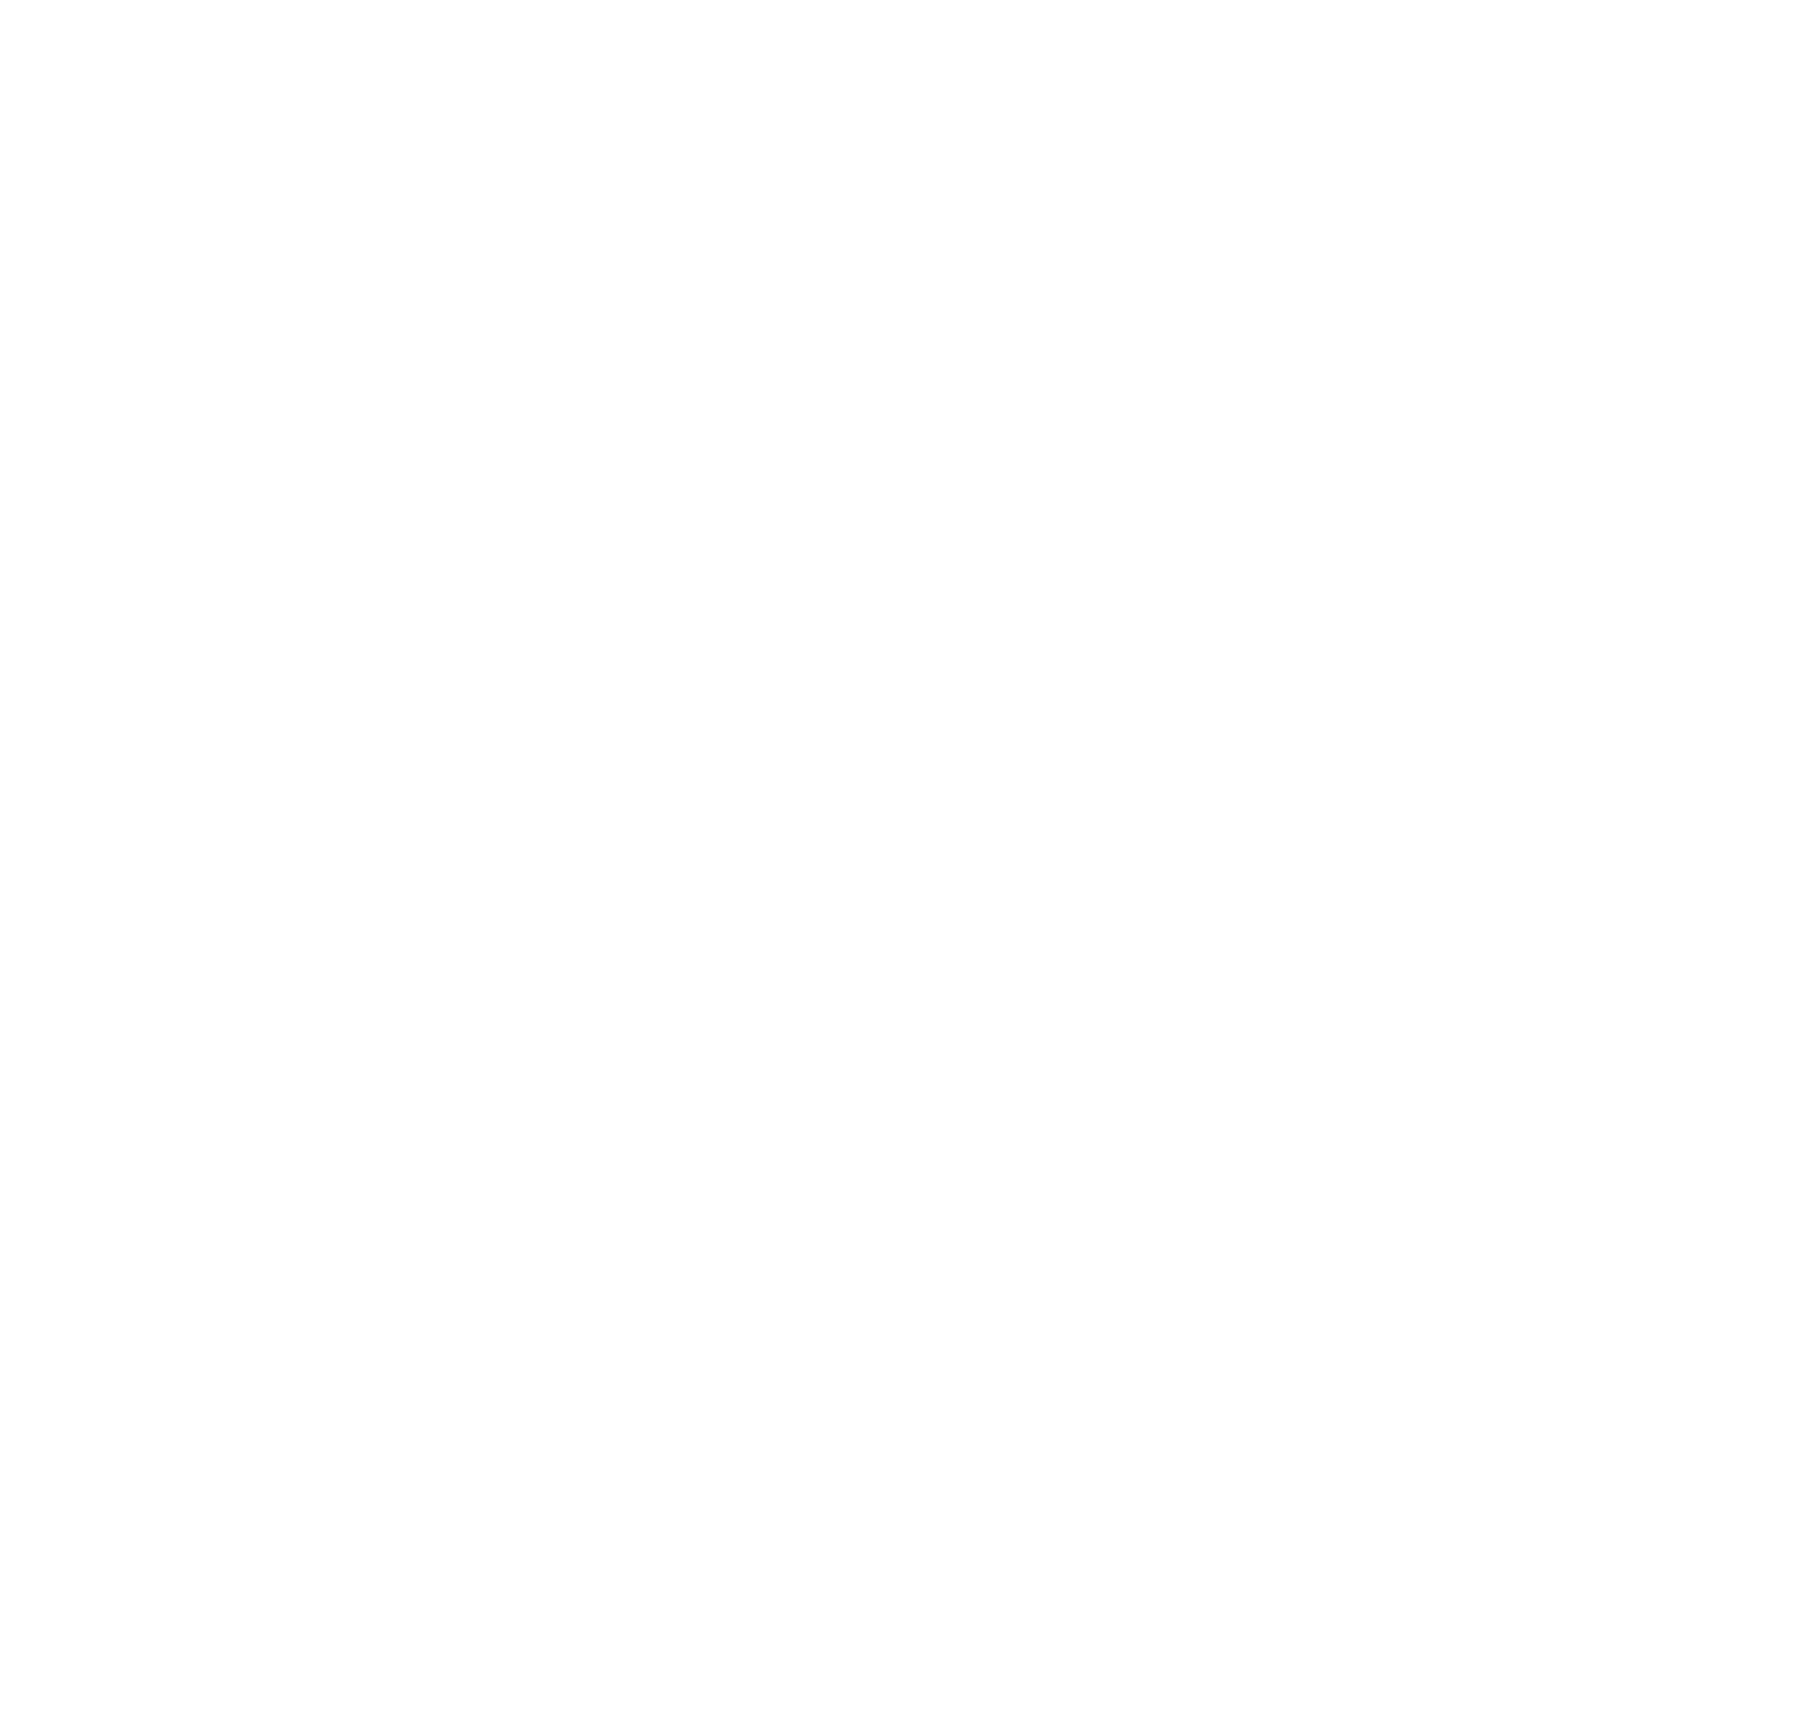 33 Staves Home